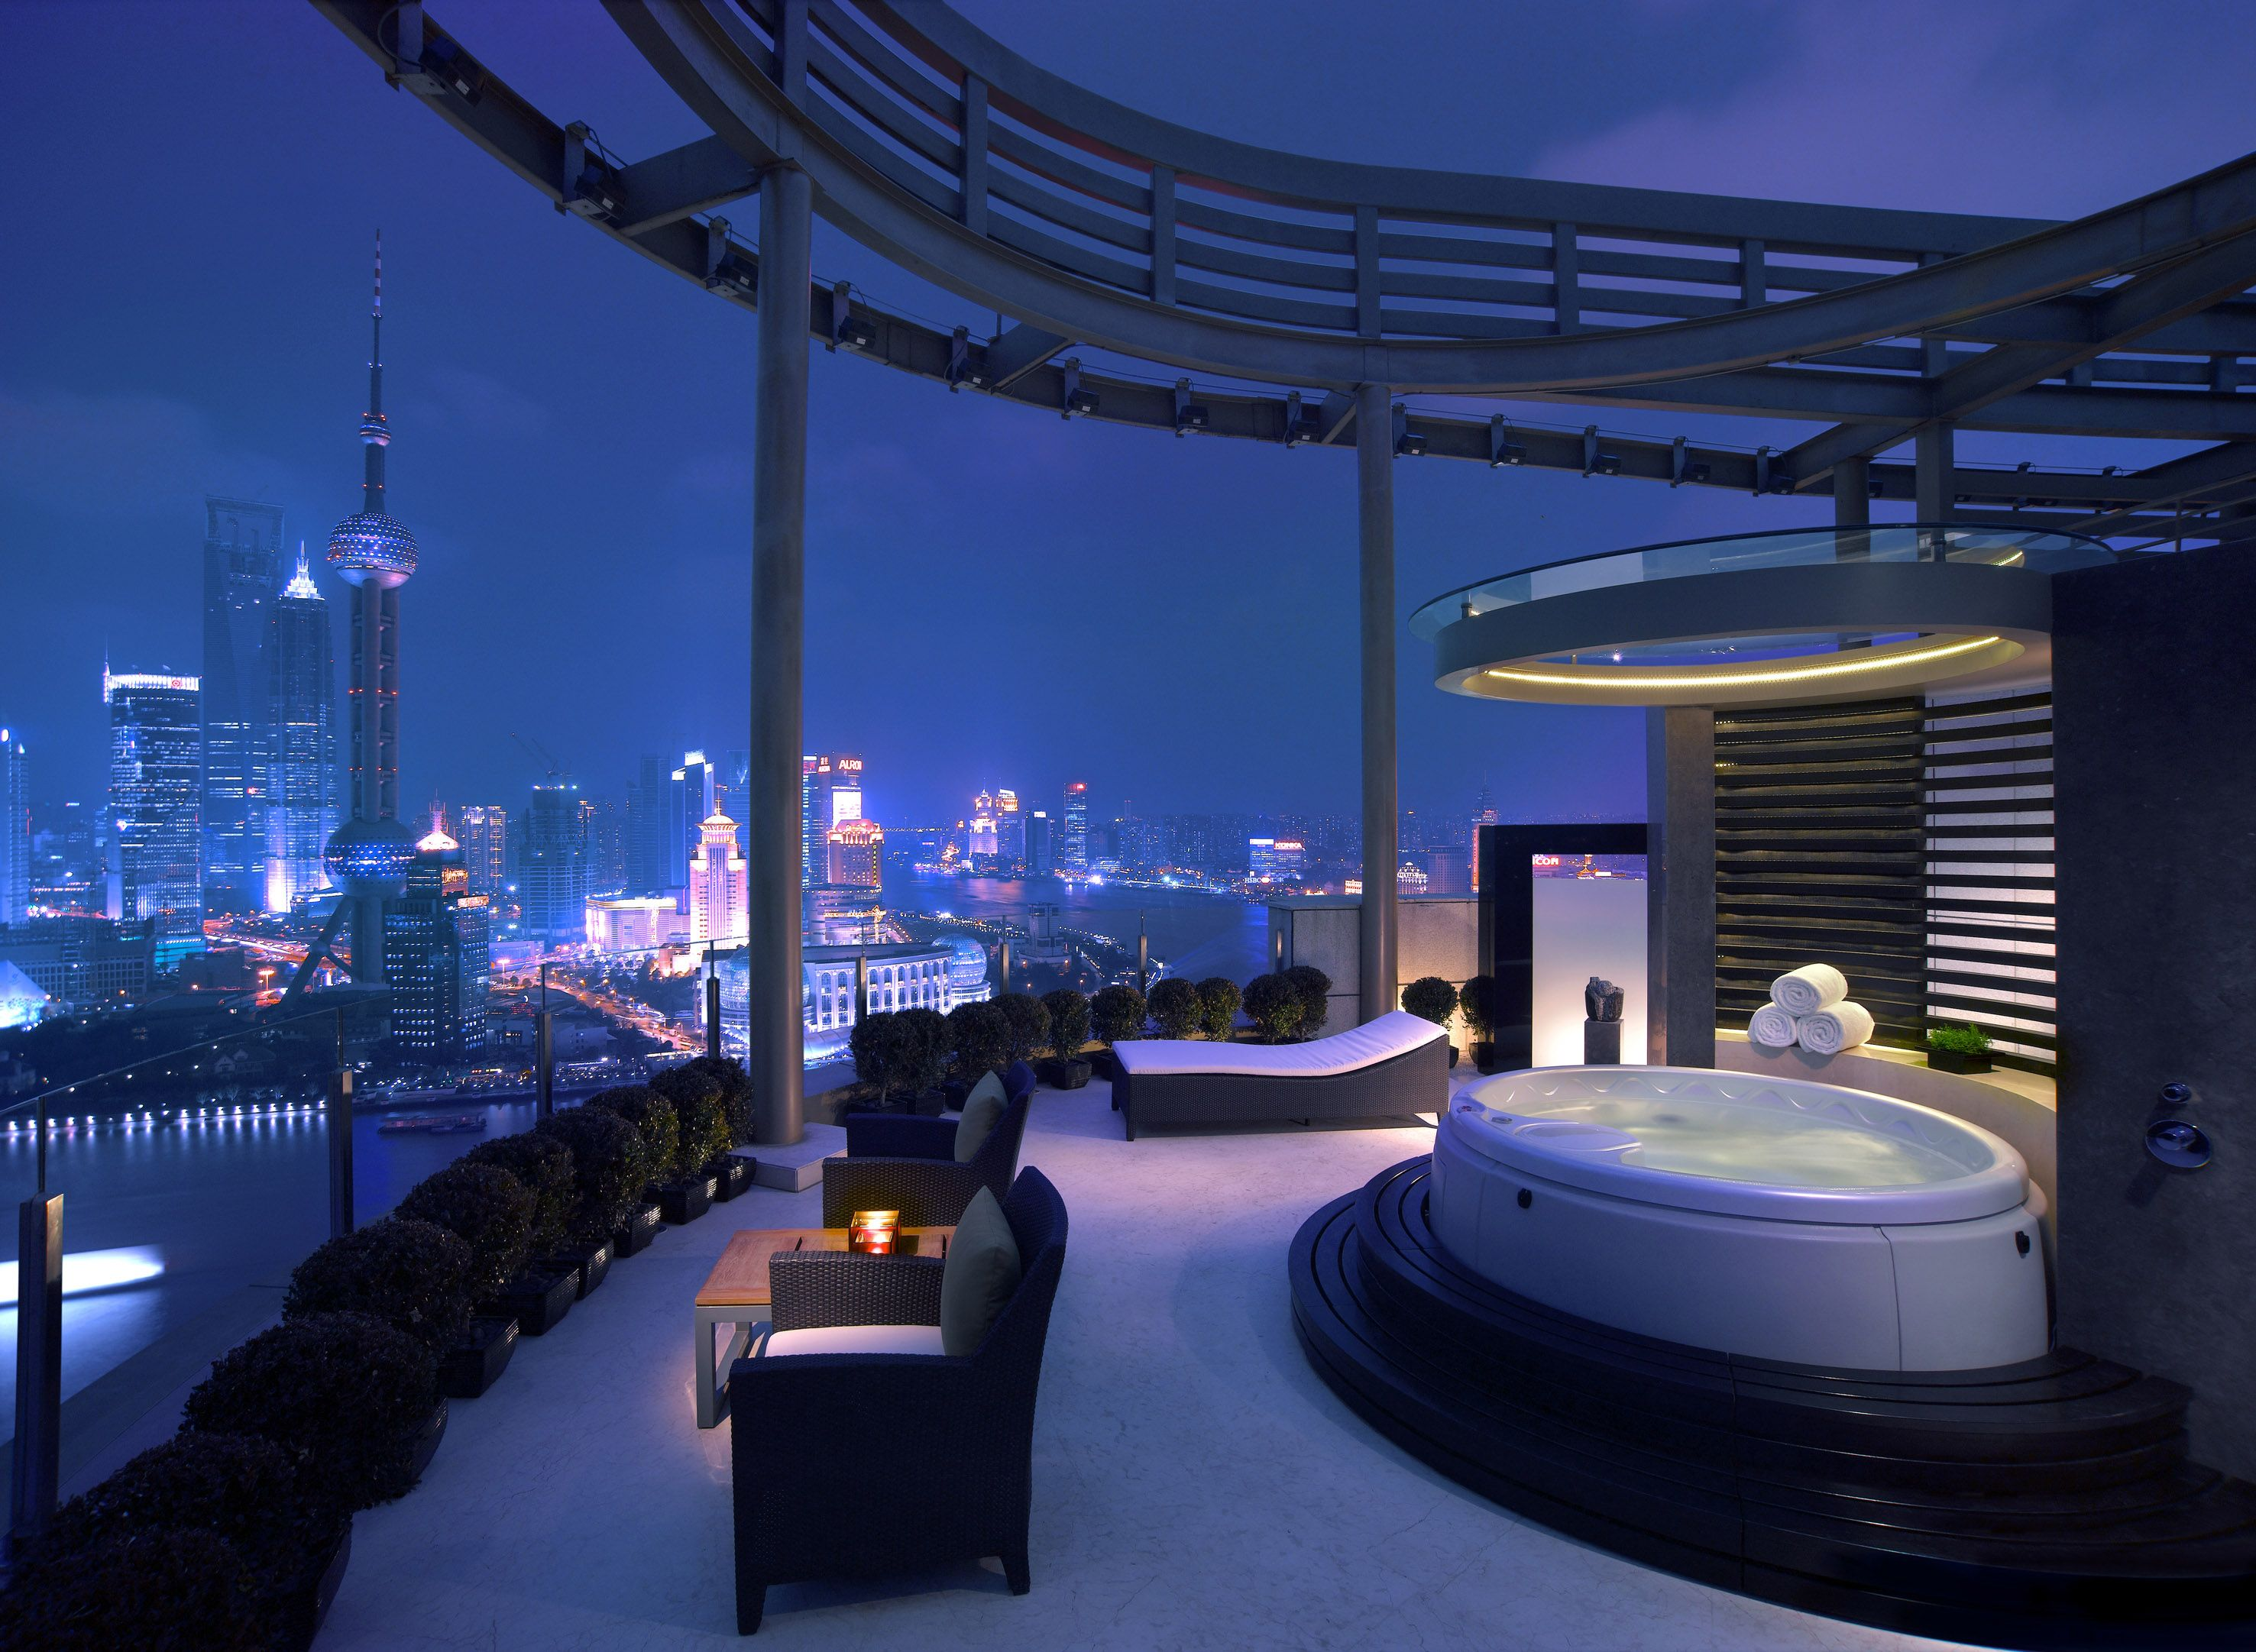 Hot Tub On The Top Of A Skyscraper Wallpaper 2953x2163 ID 2953x2163